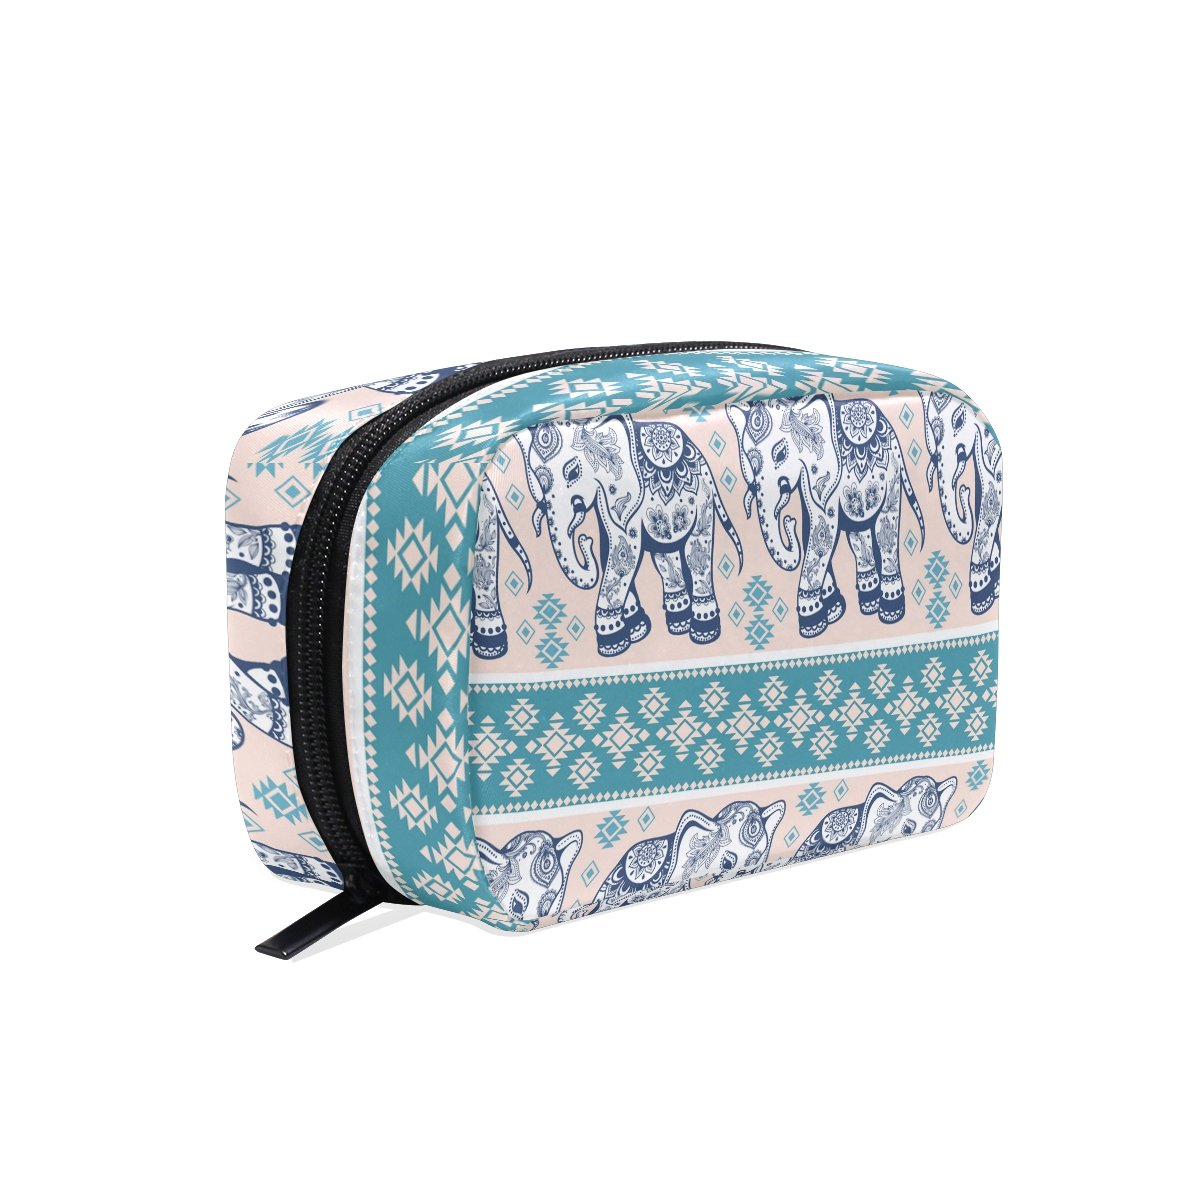 YZGO Vintage Graphic Indian Geometric Elephant Cosmetic Pouch Waterproof Makeup Bag Organizer Travel Case